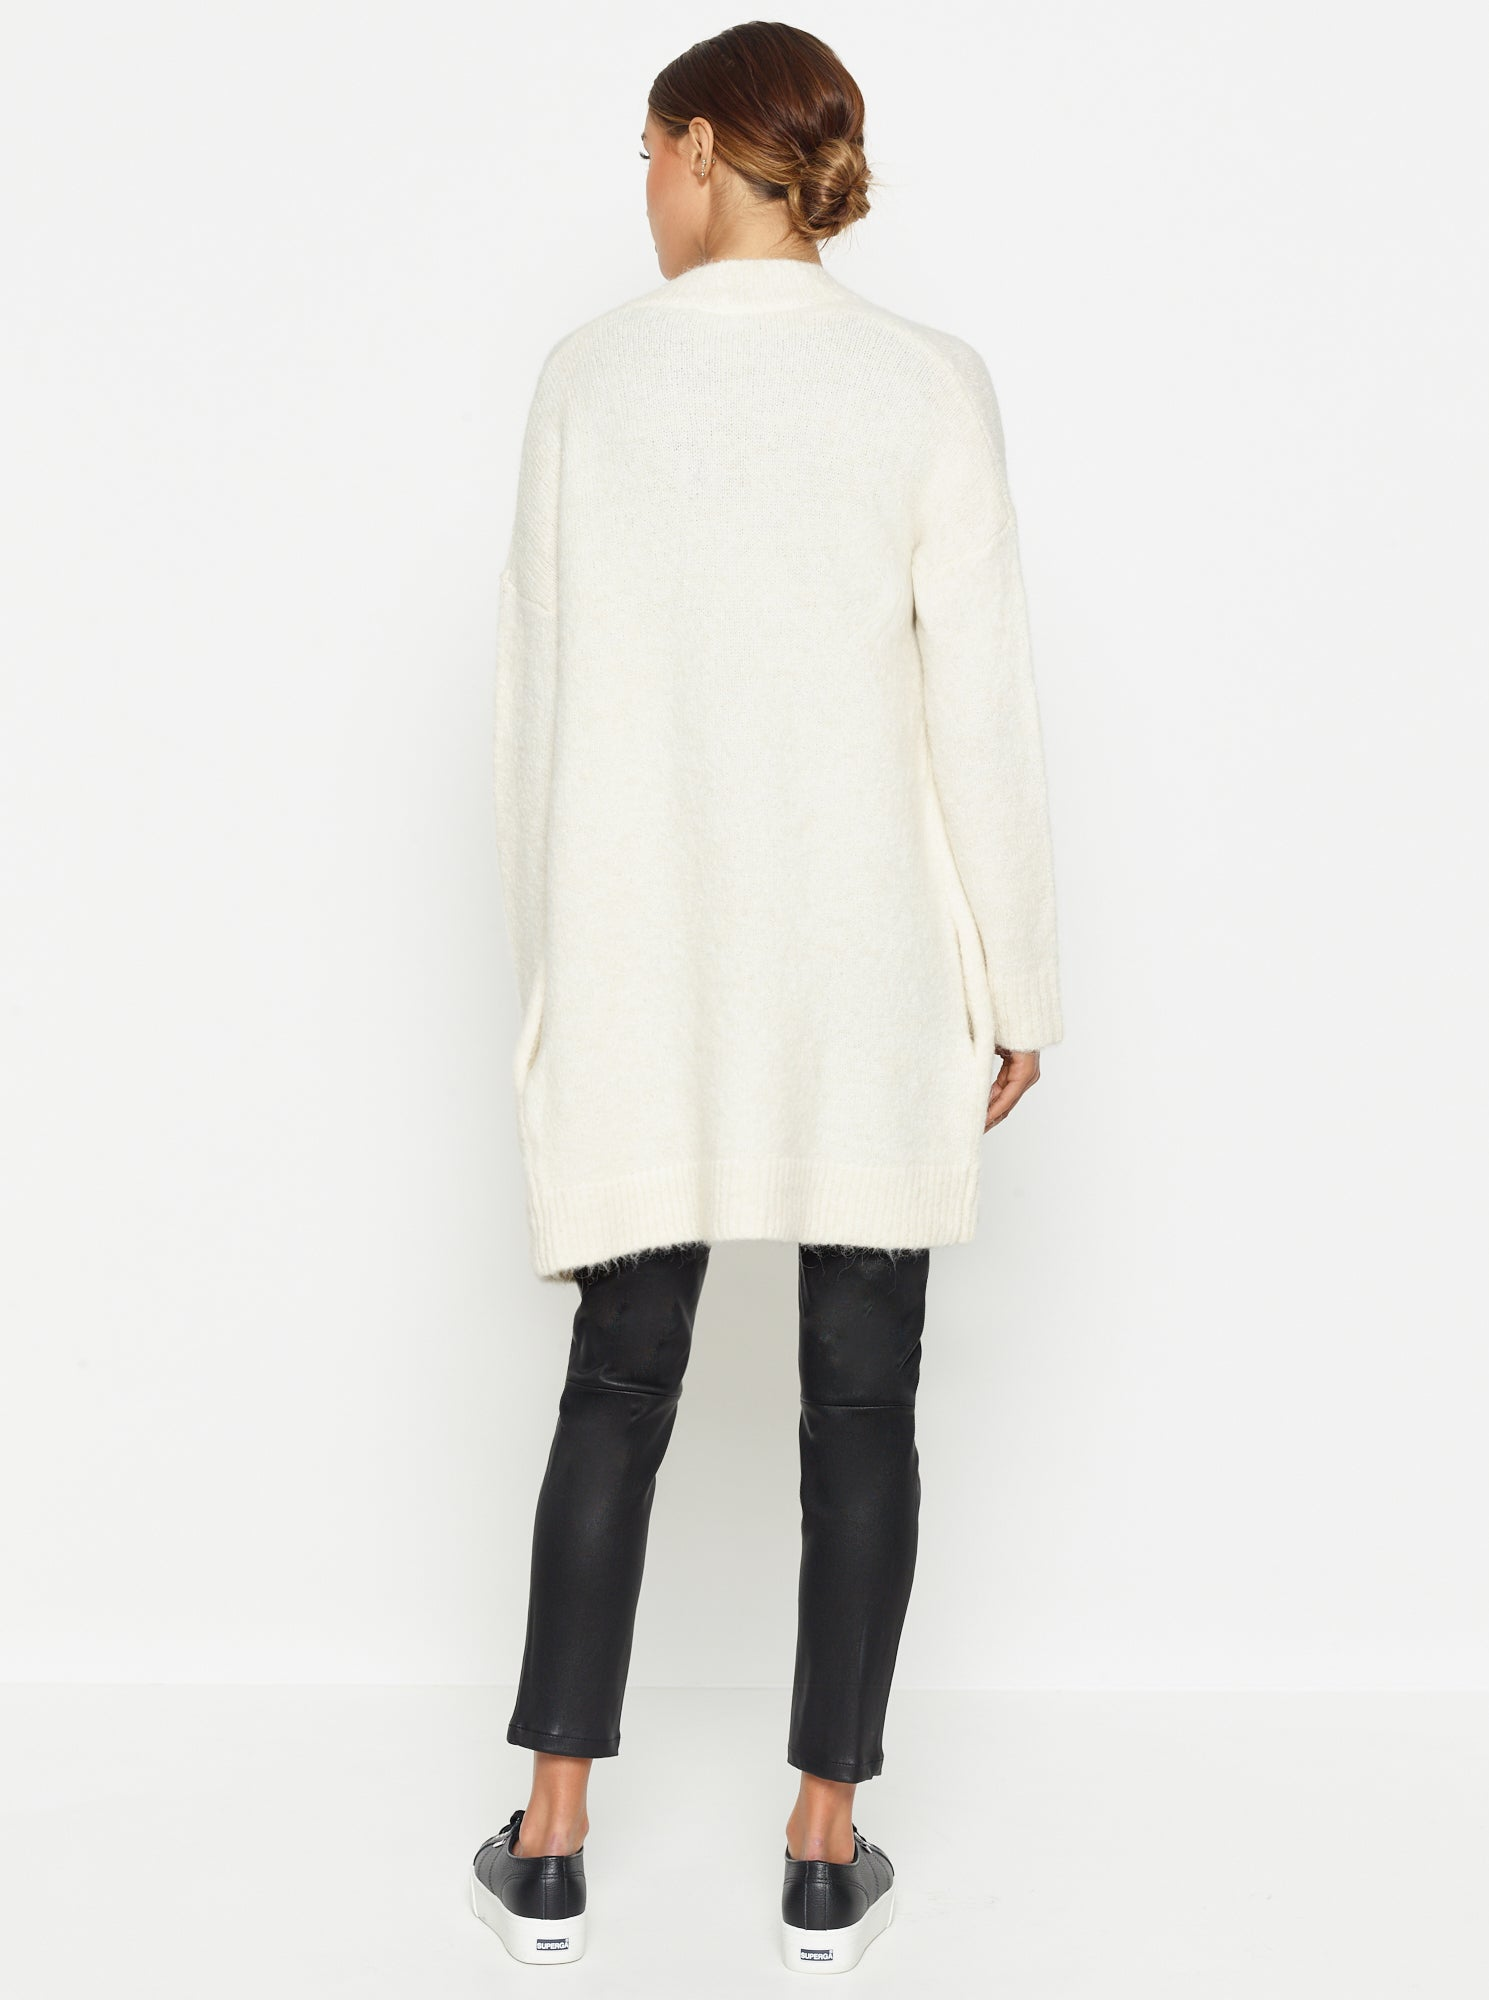 Off Duty Relaxed Slouchy Cardigan - Ivory